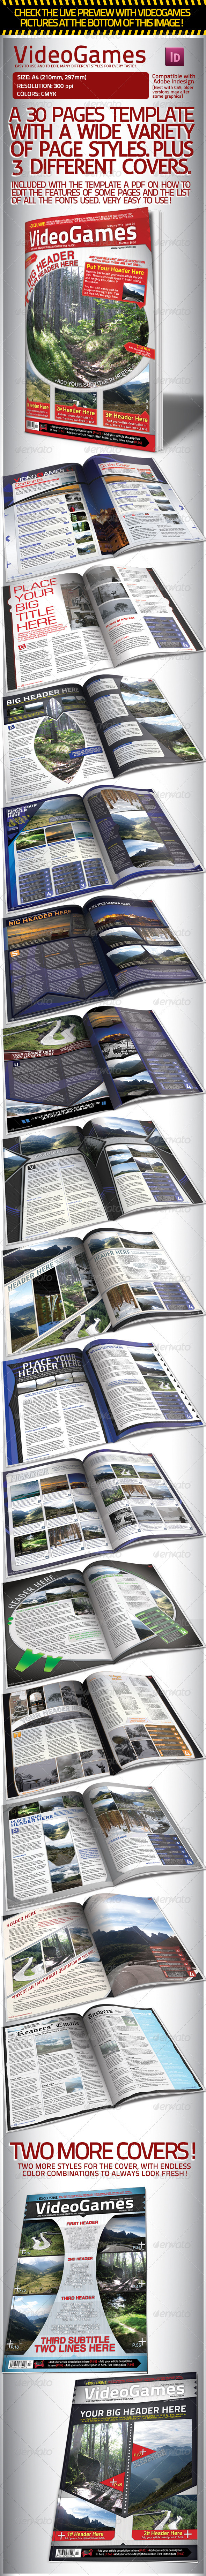 Videogames Magazine Template, with 3 Covers - Magazines Print Templates